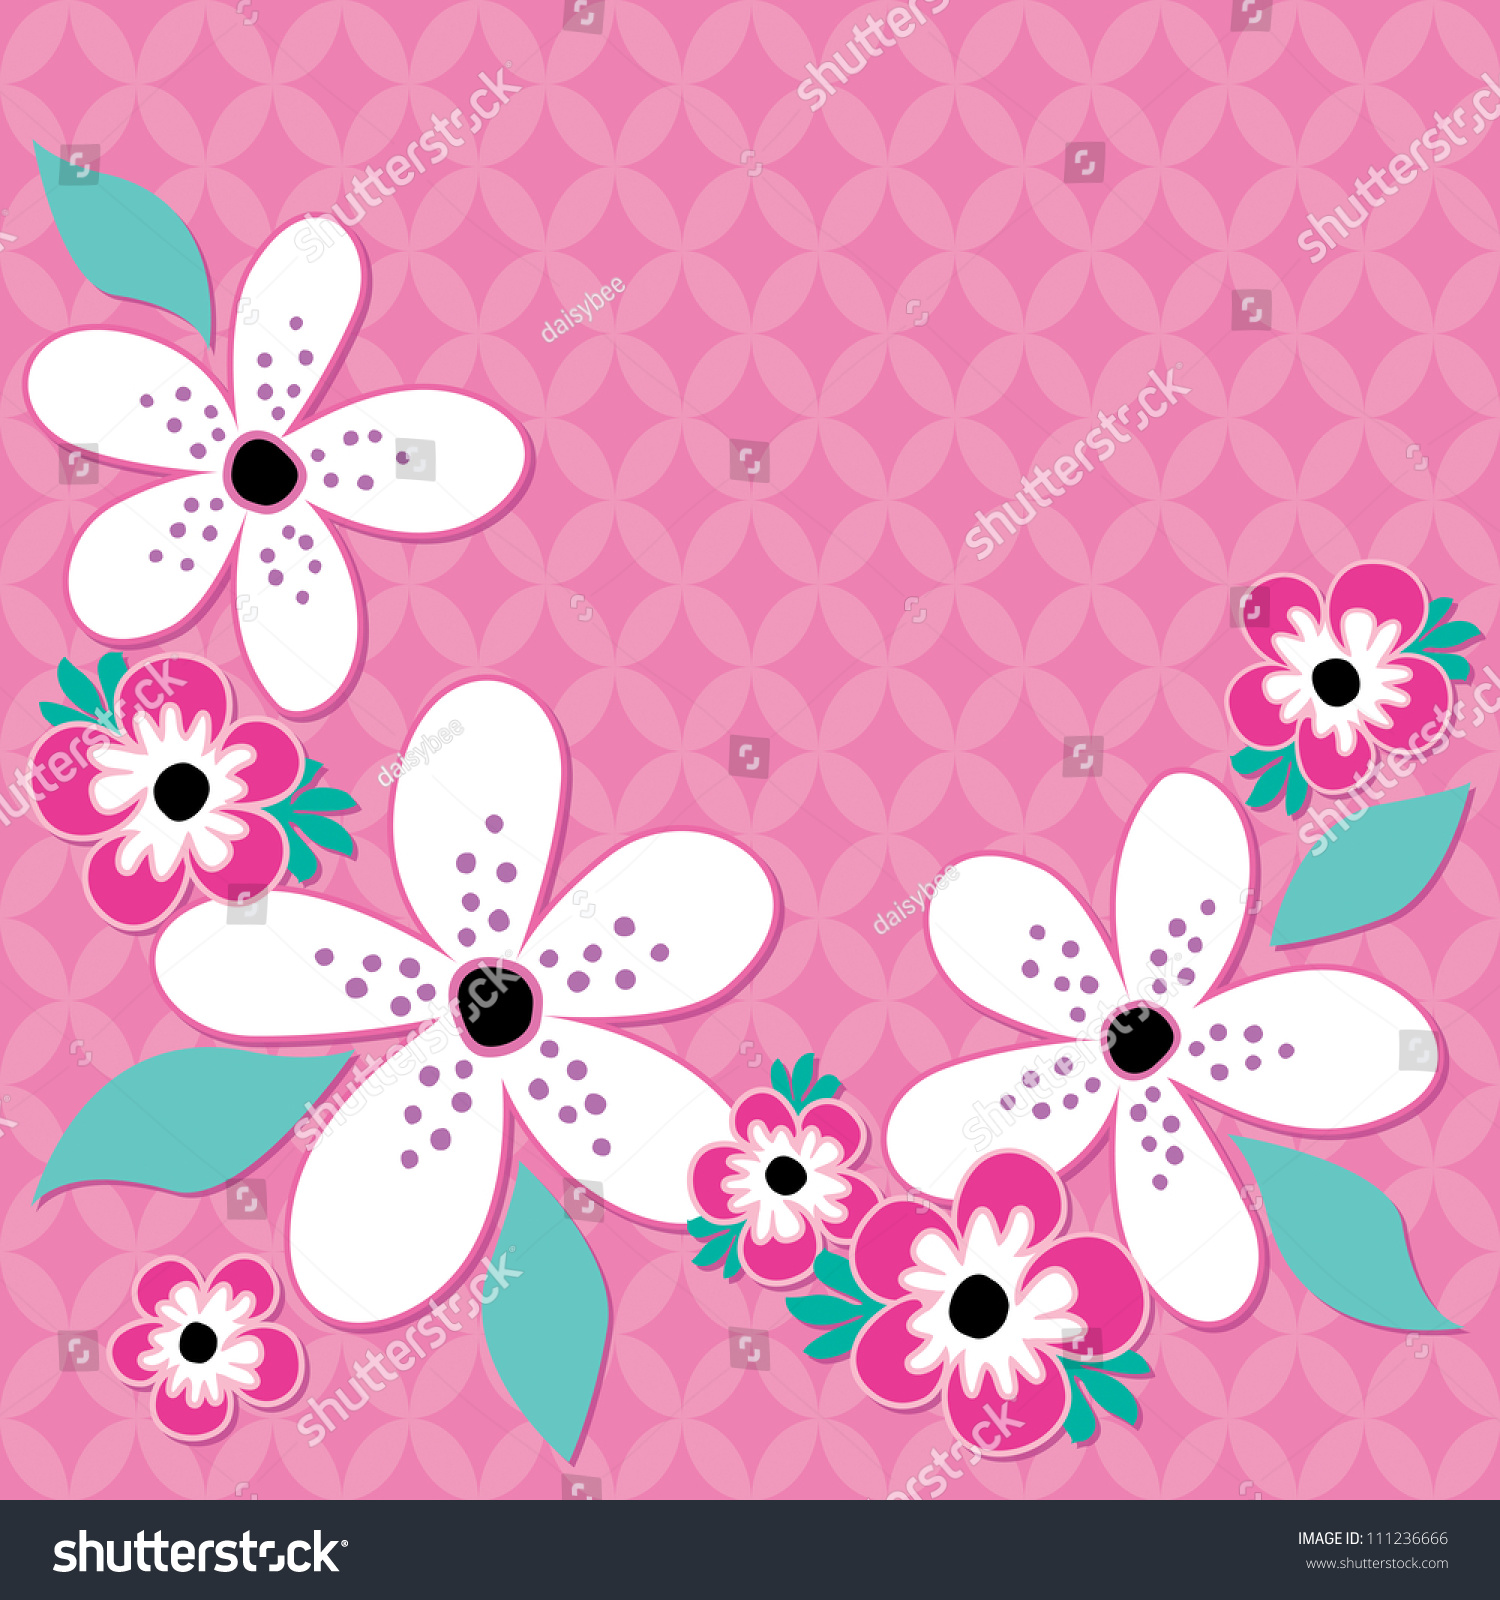 Raster greeting card template pink white stock illustration raster greeting card template in pink and white great for birthday easter thank kristyandbryce Images